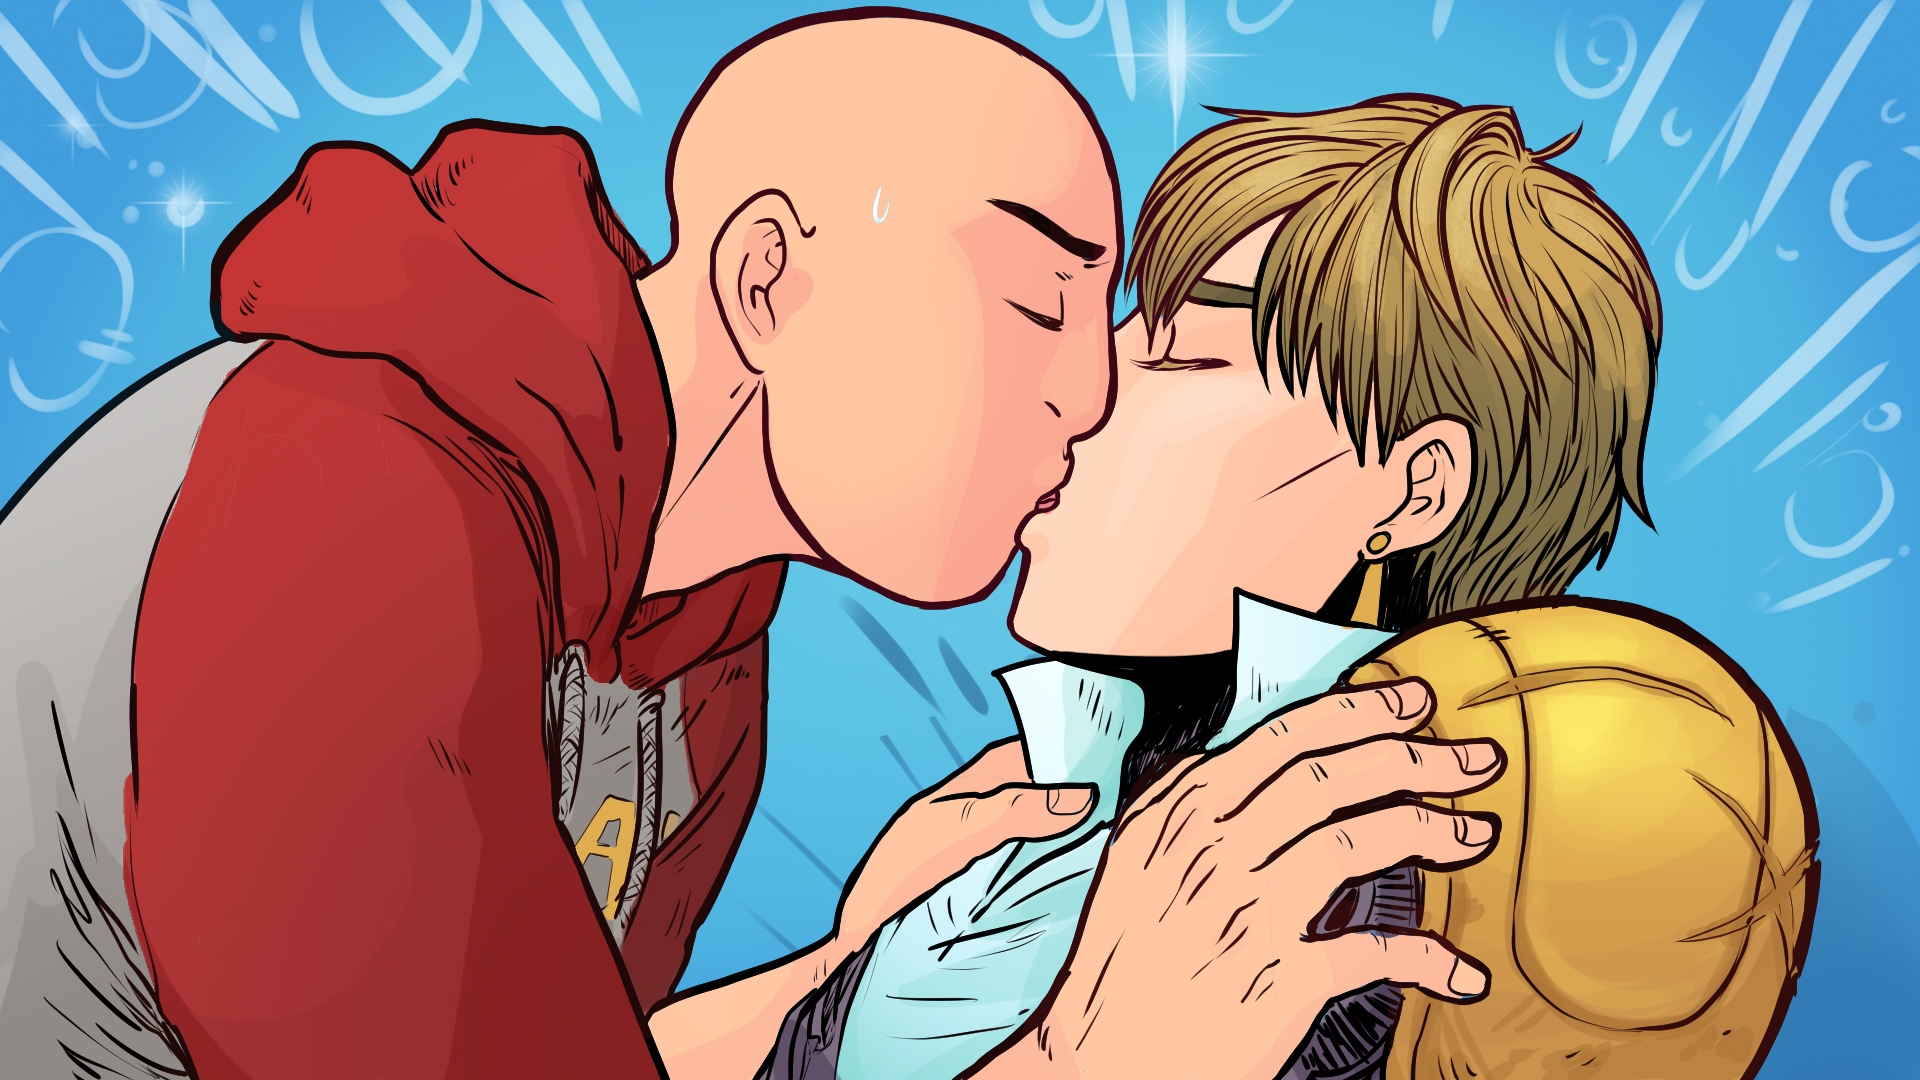 Genos Route Romance - Stay and Help